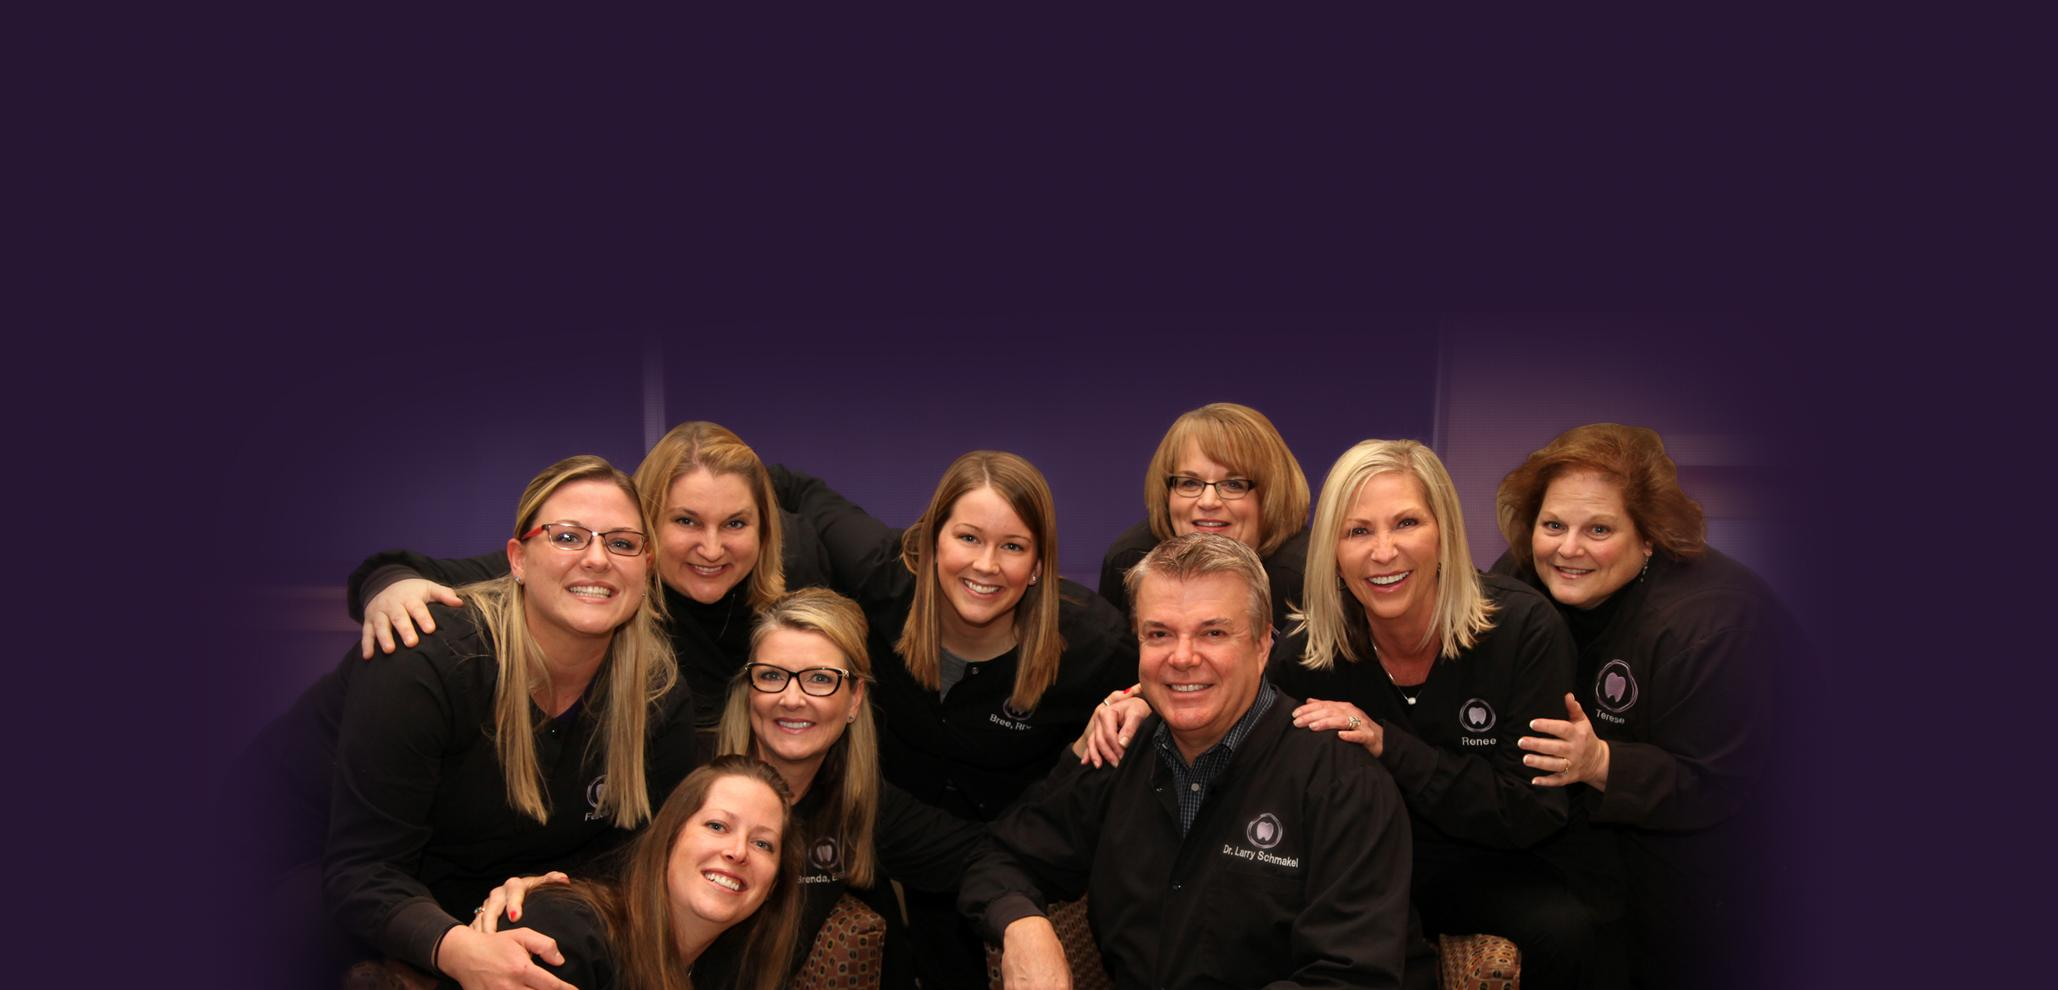 Dr. Larry Schmakel and staff